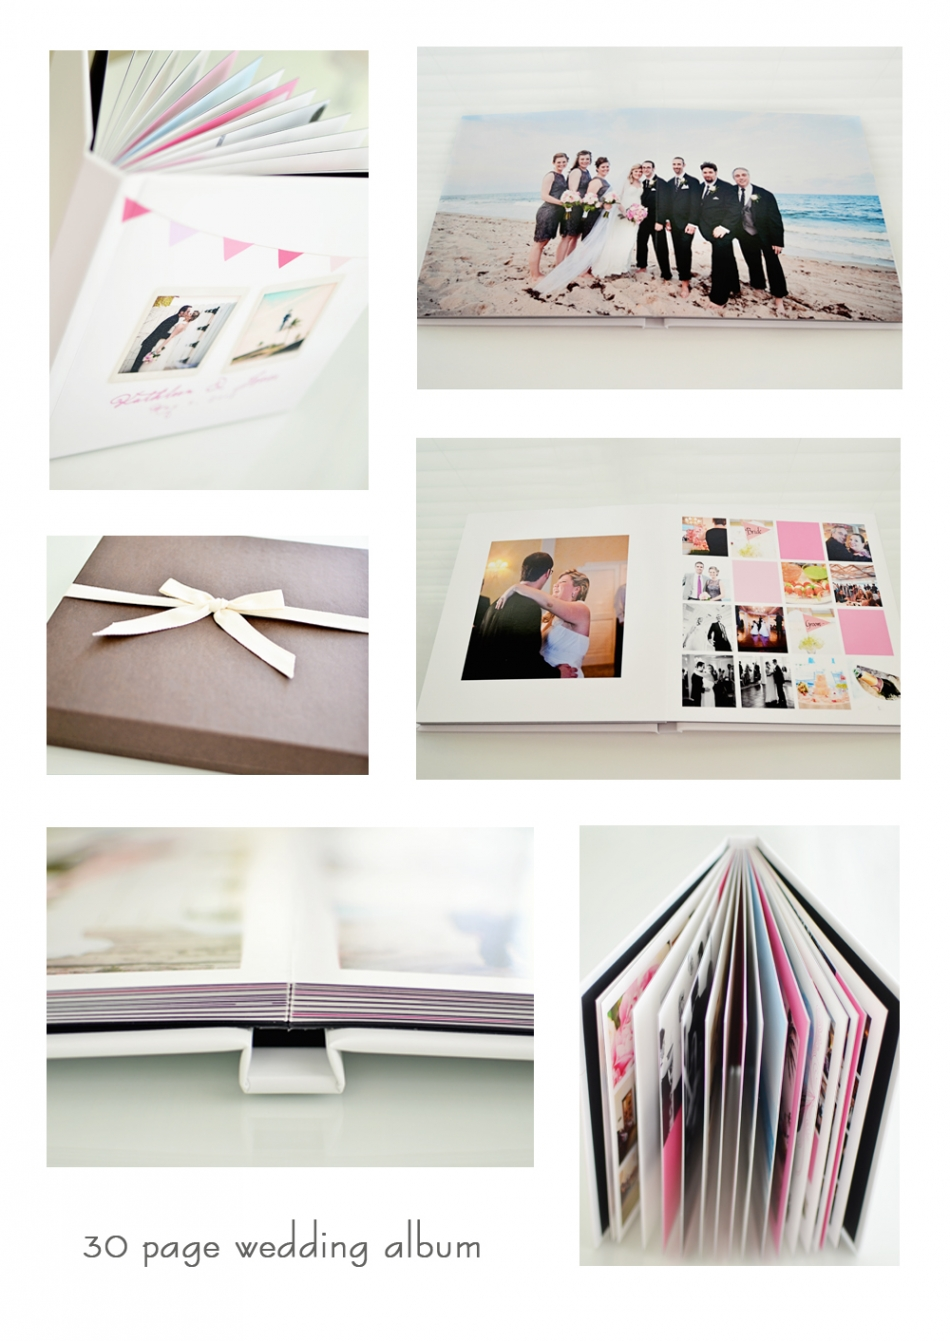 Consider Splurging For The Impressive 10x10 20 Or 30 Page Album From Your Next Session